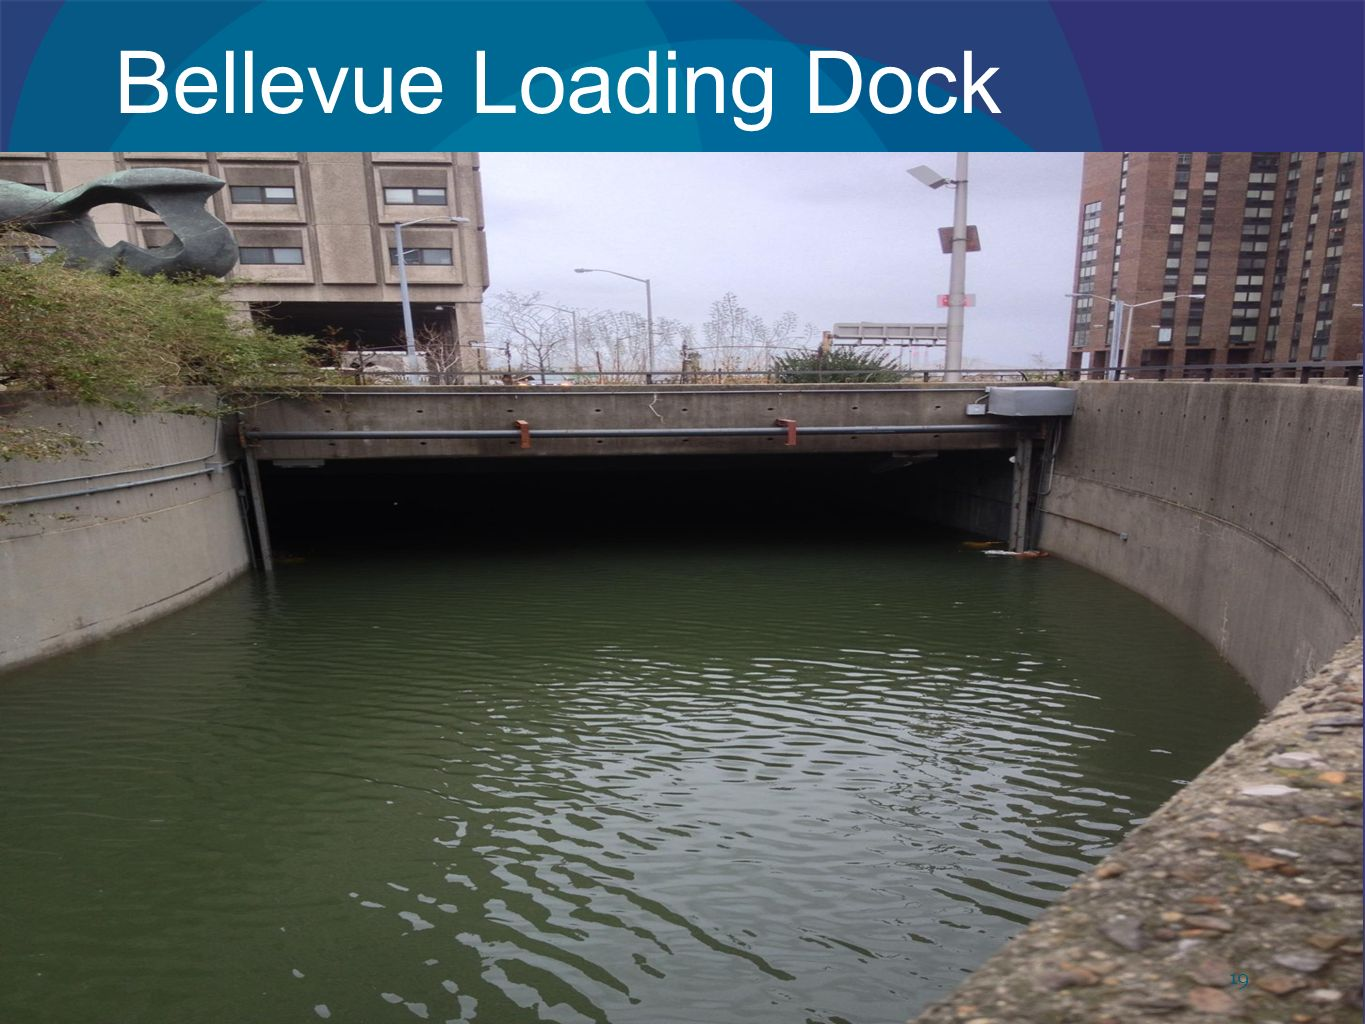 Bellevue Loading Dock